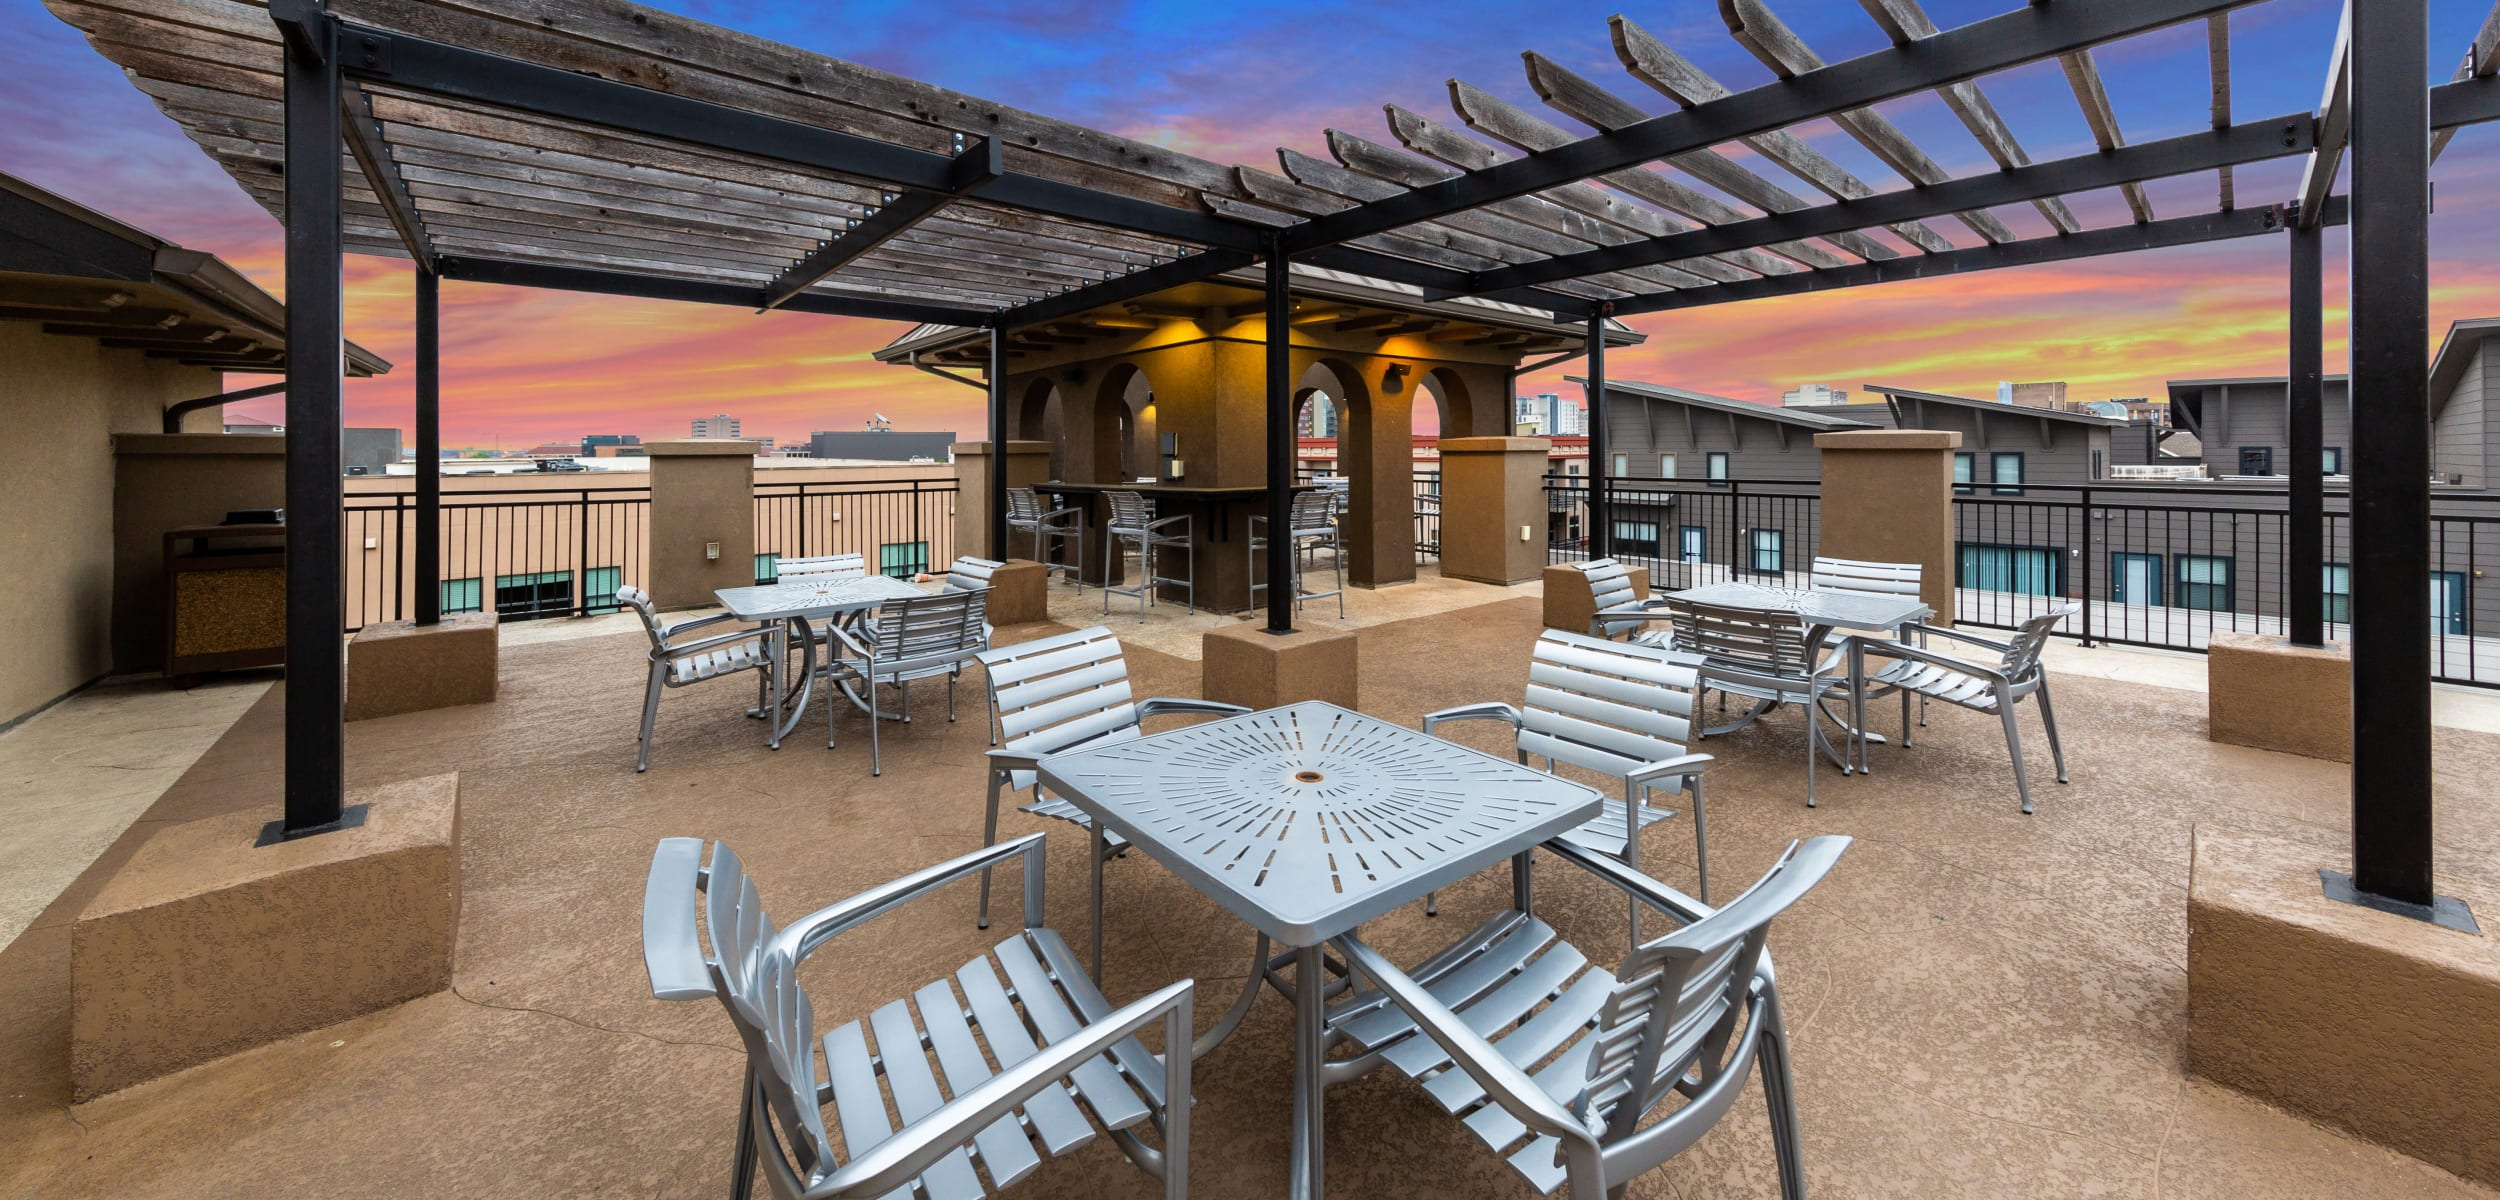 Regents West at 26th's rooftop patio area in Austin, Texas